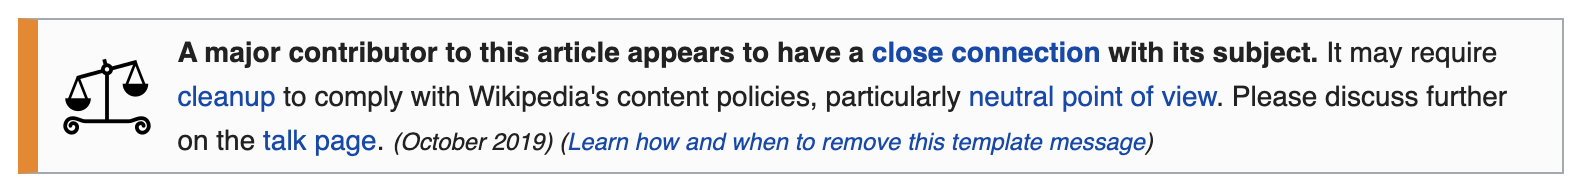 Wikipedia warning message